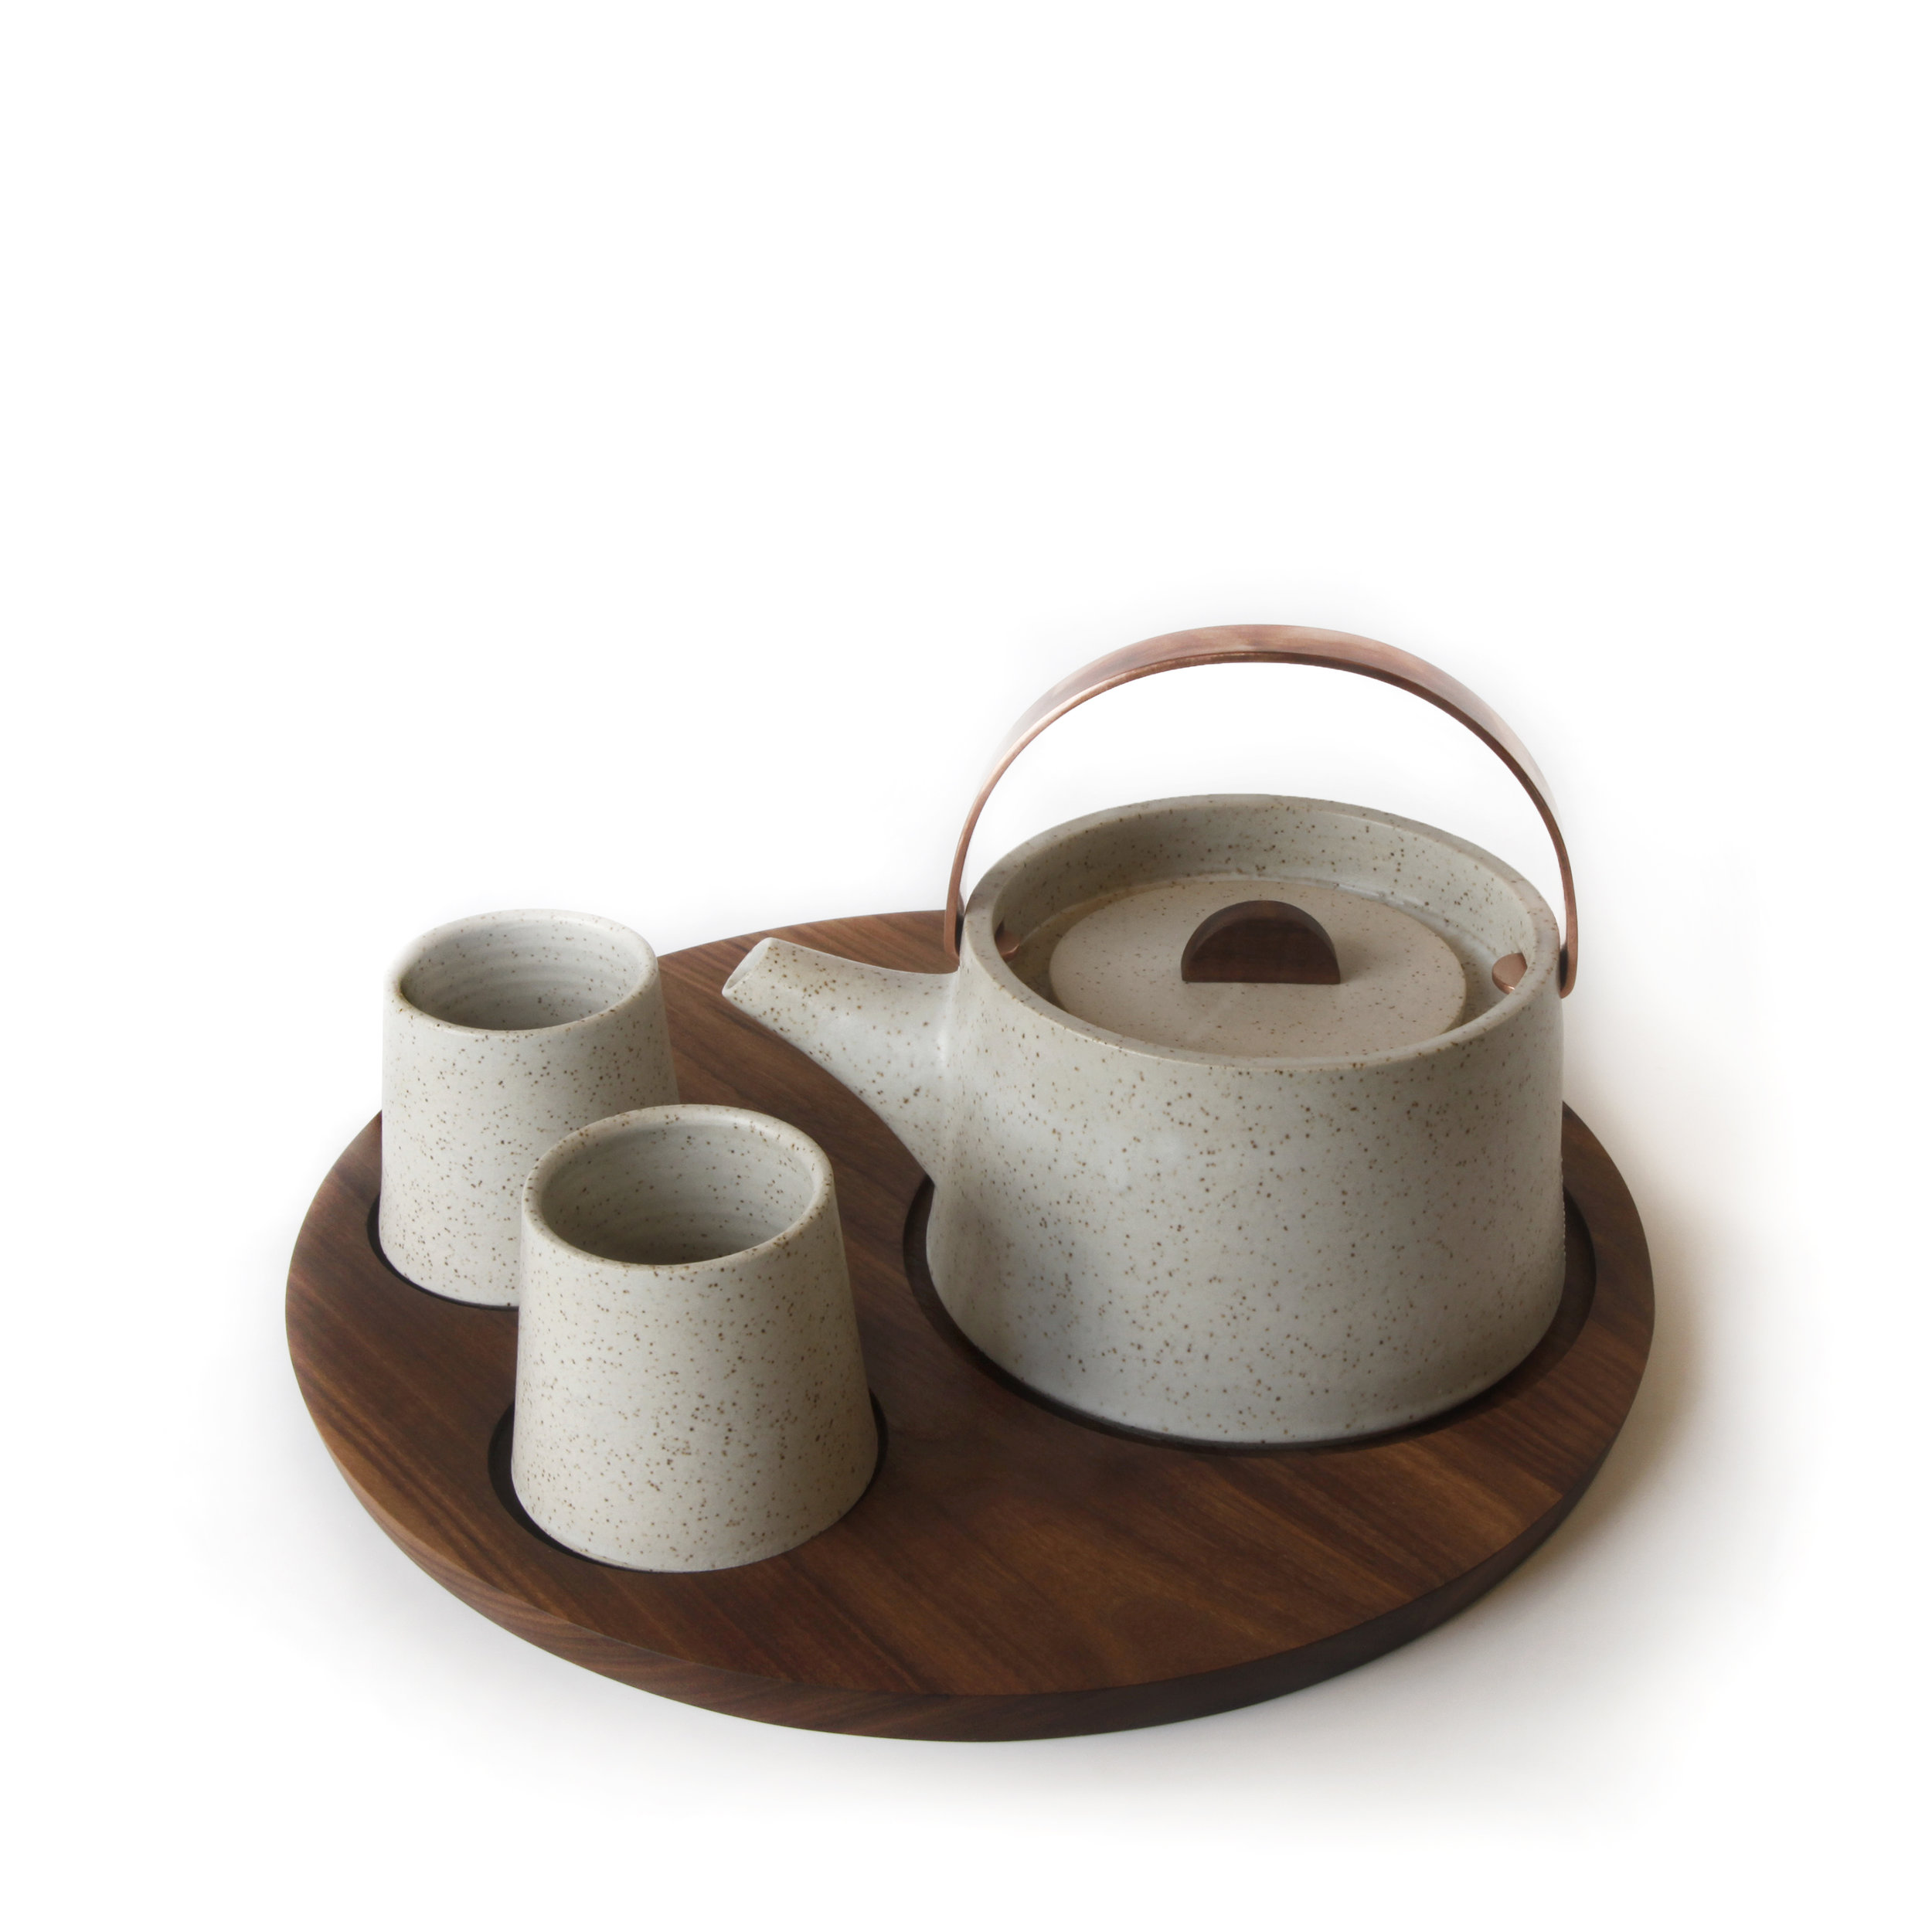 Speckled Stoneware teapot and cups, Black Walnut serving tray and knob, Copper handle, 2018